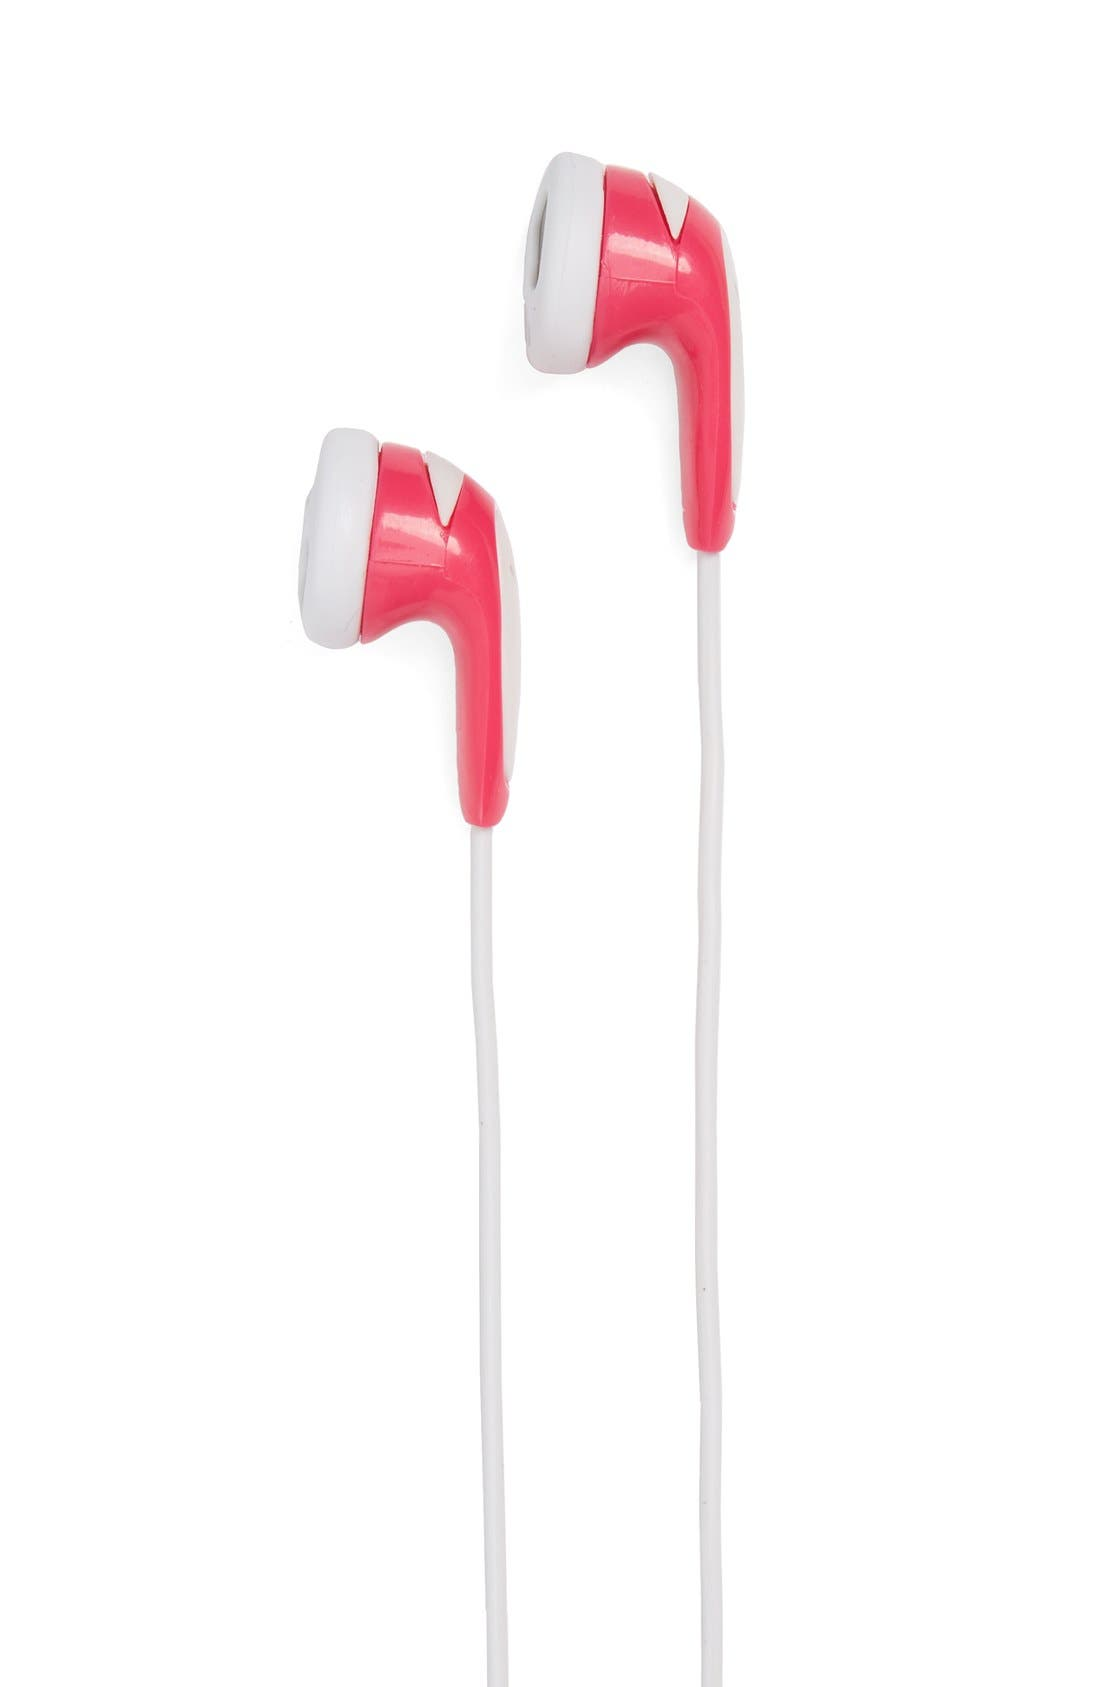 Moki Popper Volume Limited Ear Buds